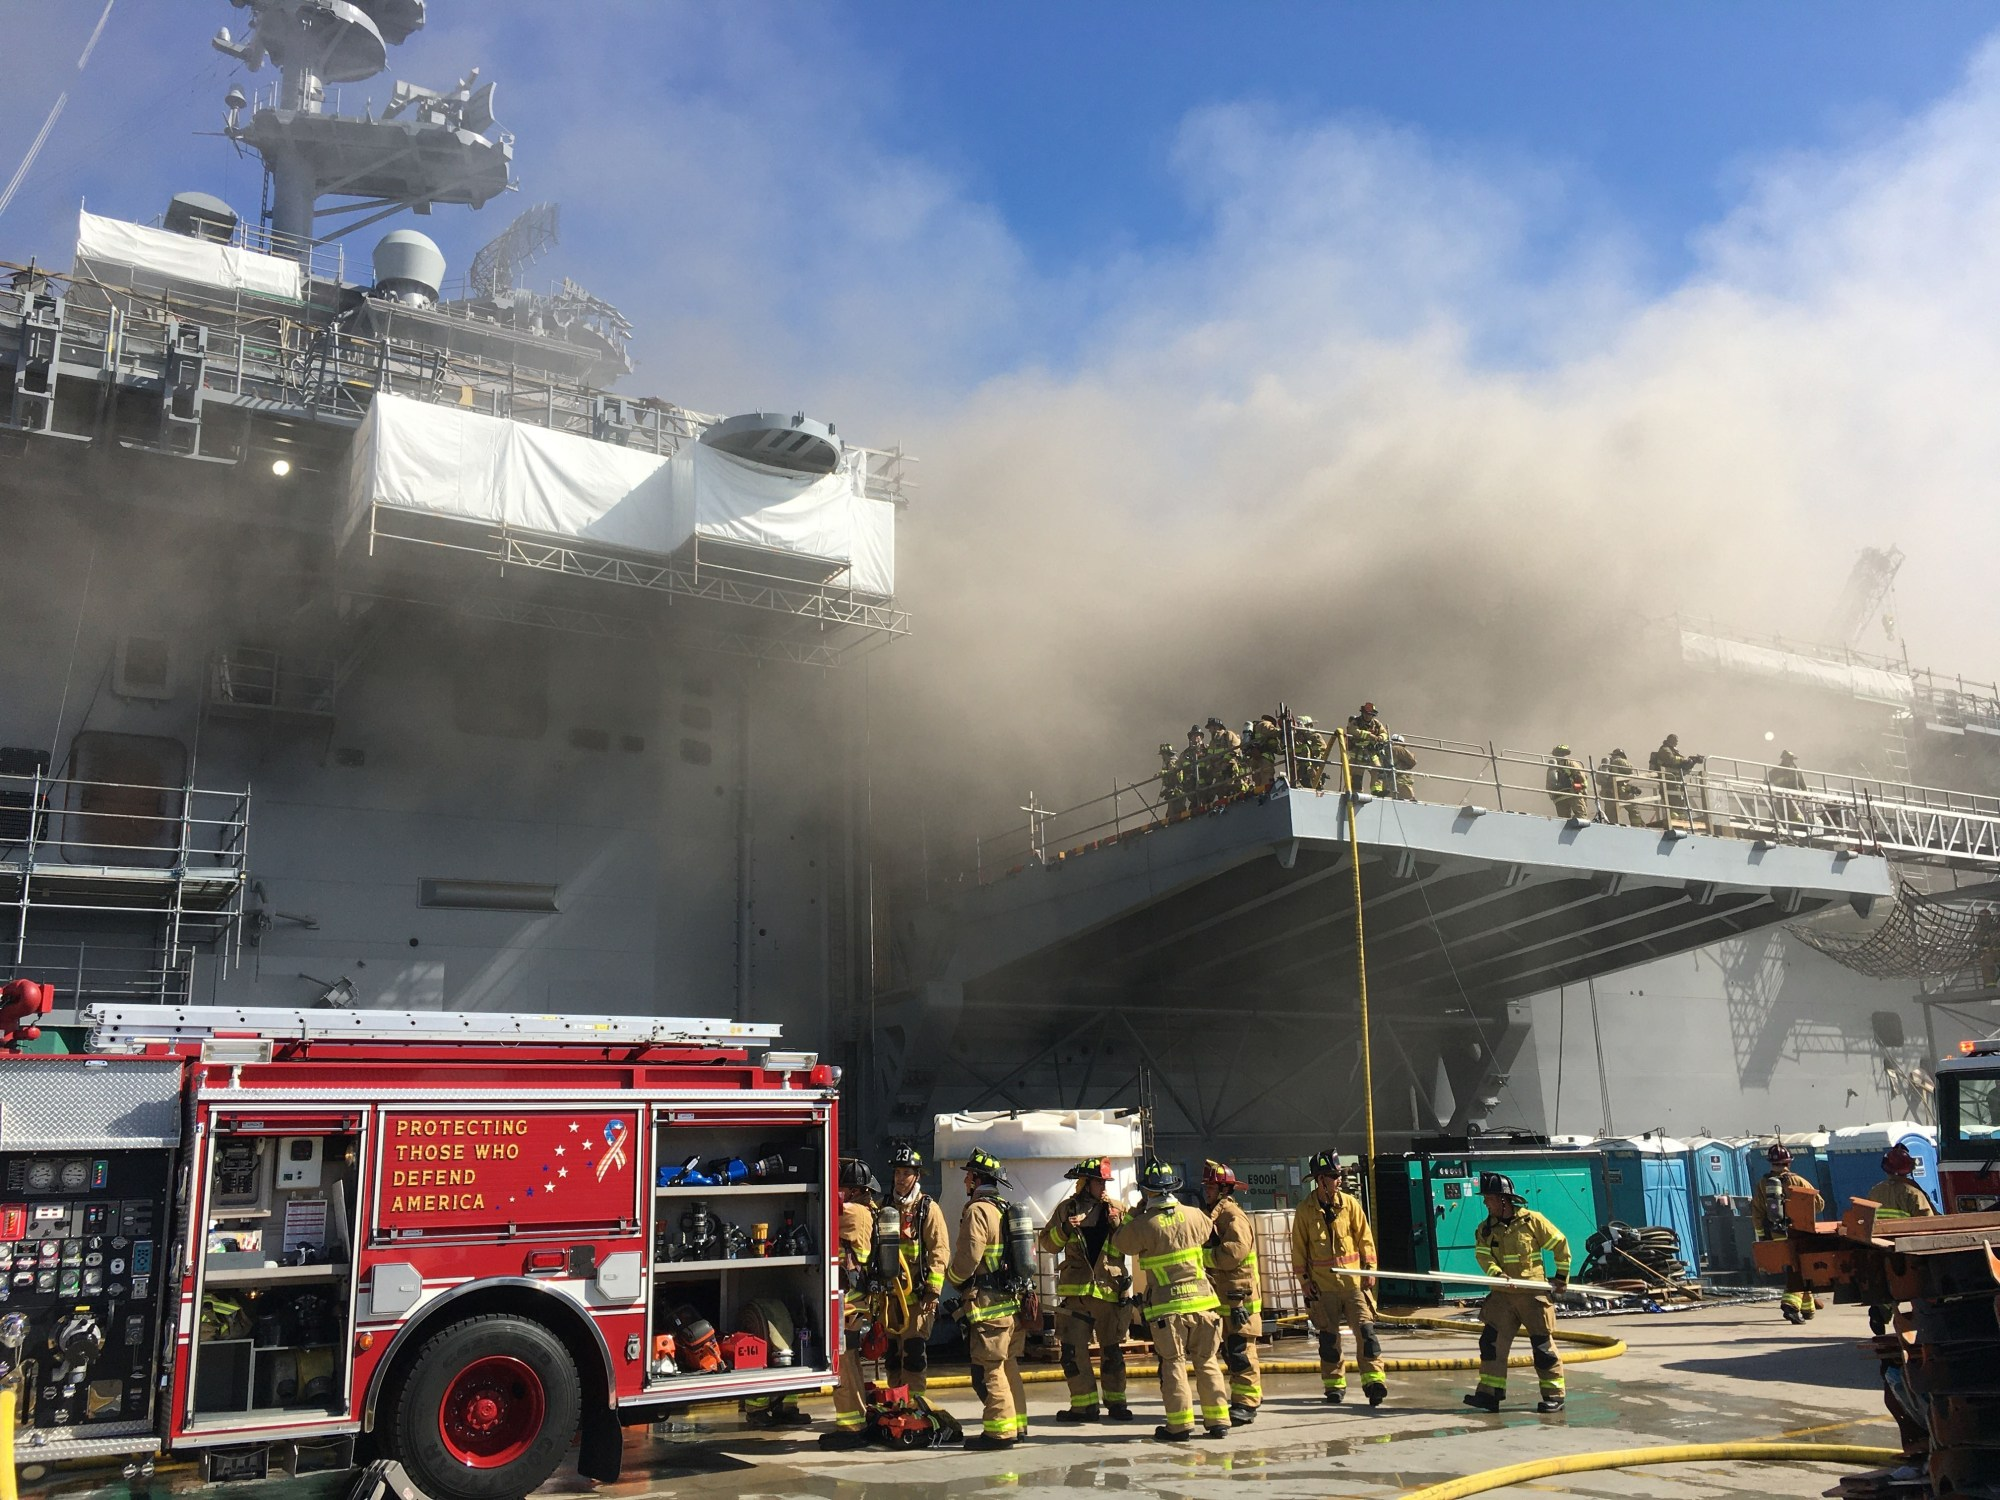 Sailors and Federal Fire San Diego firefighters combat a fire aboard the amphibious assault ship USS Bonhomme Richard (LHD 6), July 12, 2020. (Mass Communication Specialist 1st Class Jason Kofonow/U.S. Navy via Getty Images)